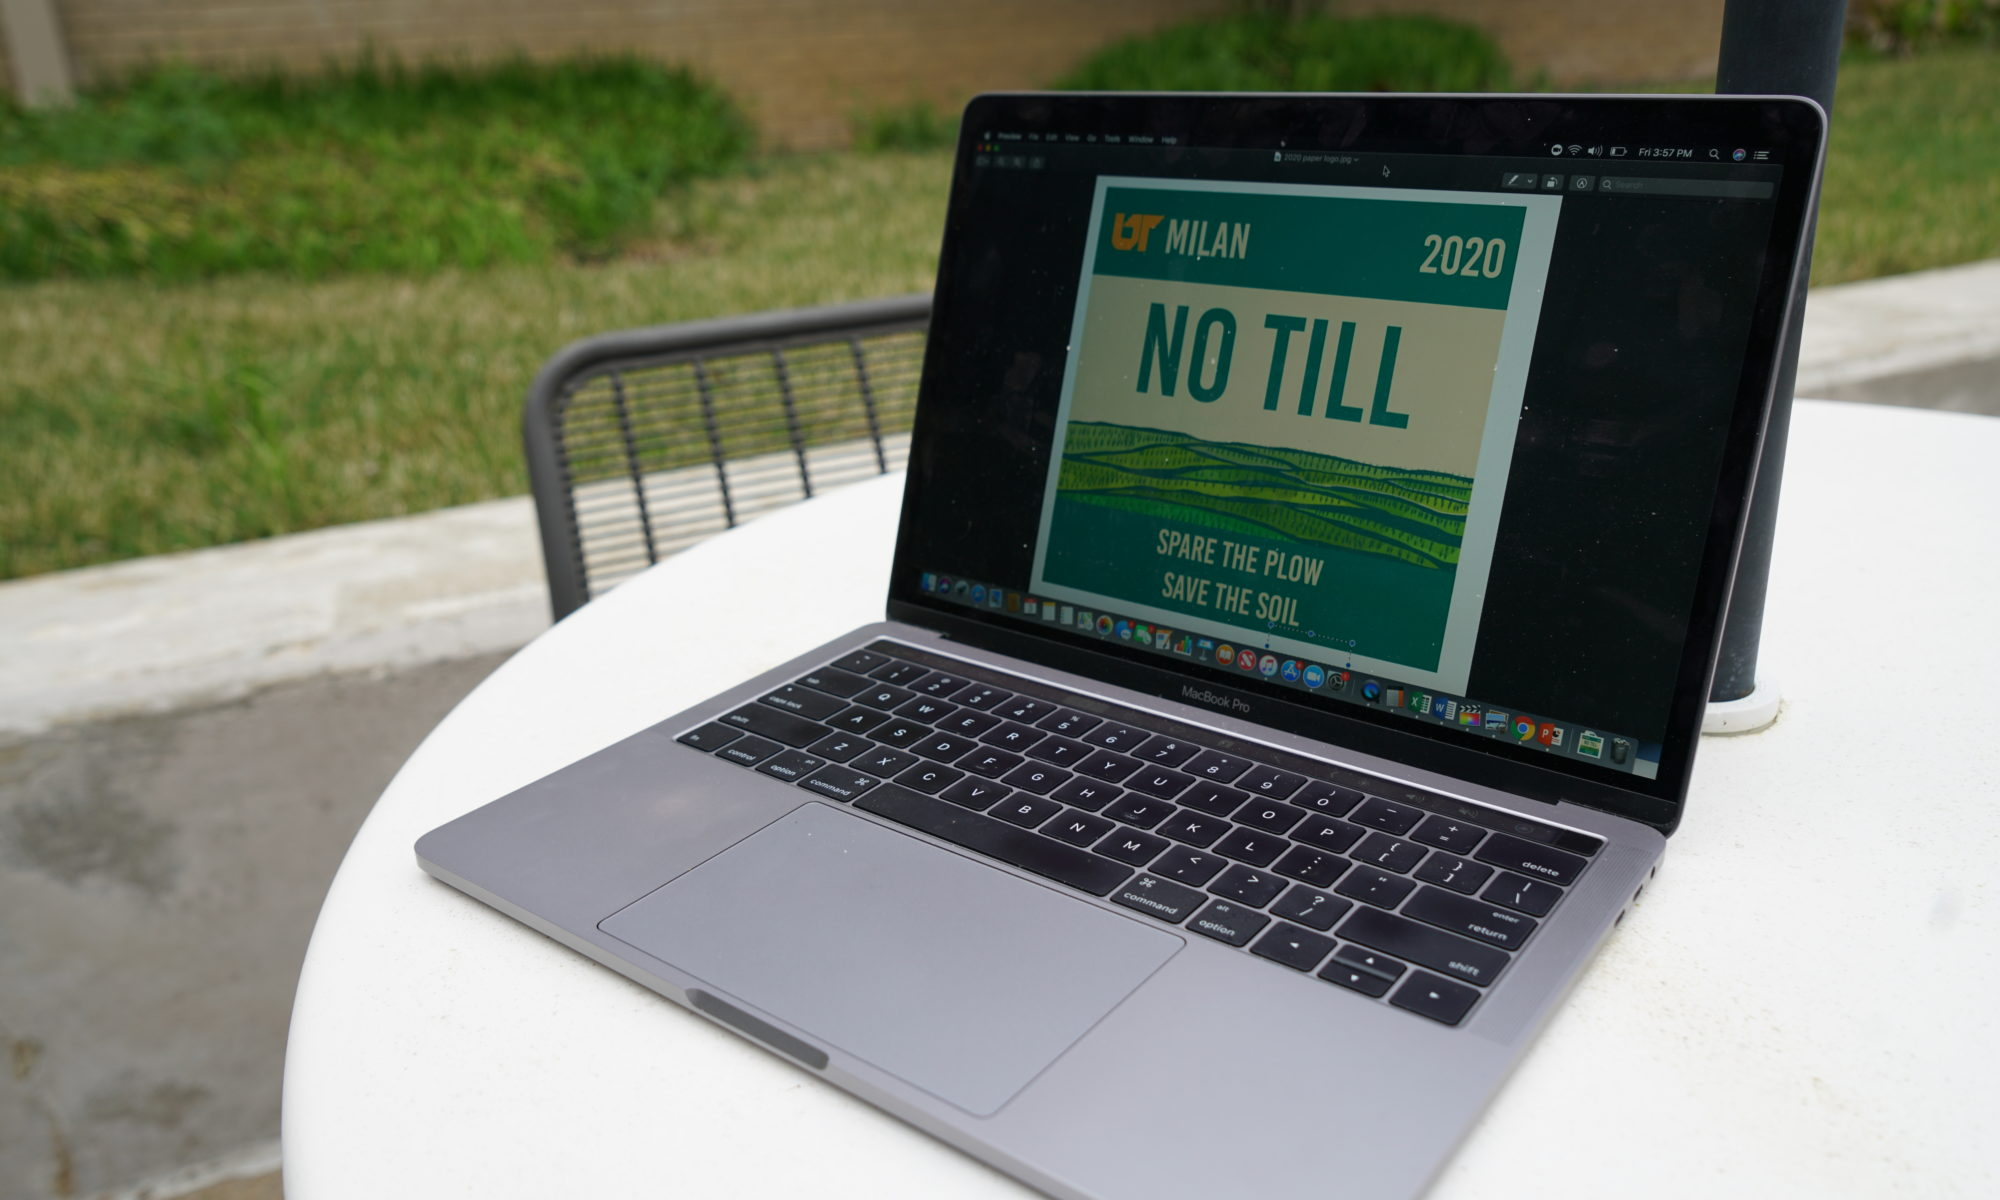 Picture of laptop on a table outdoors